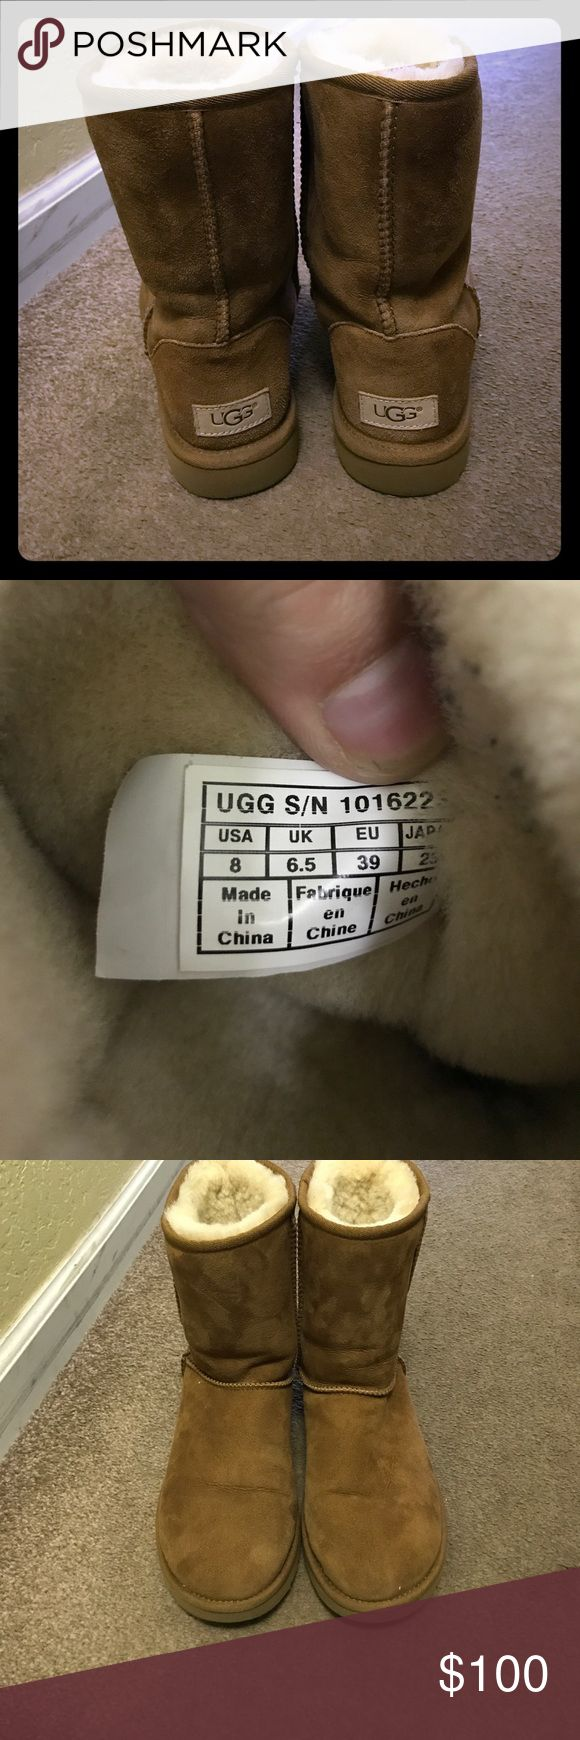 Short chestnut uggs Worn only a few times. Short chestnut size 8 uggs UGG Shoes Winter & Rain Boots